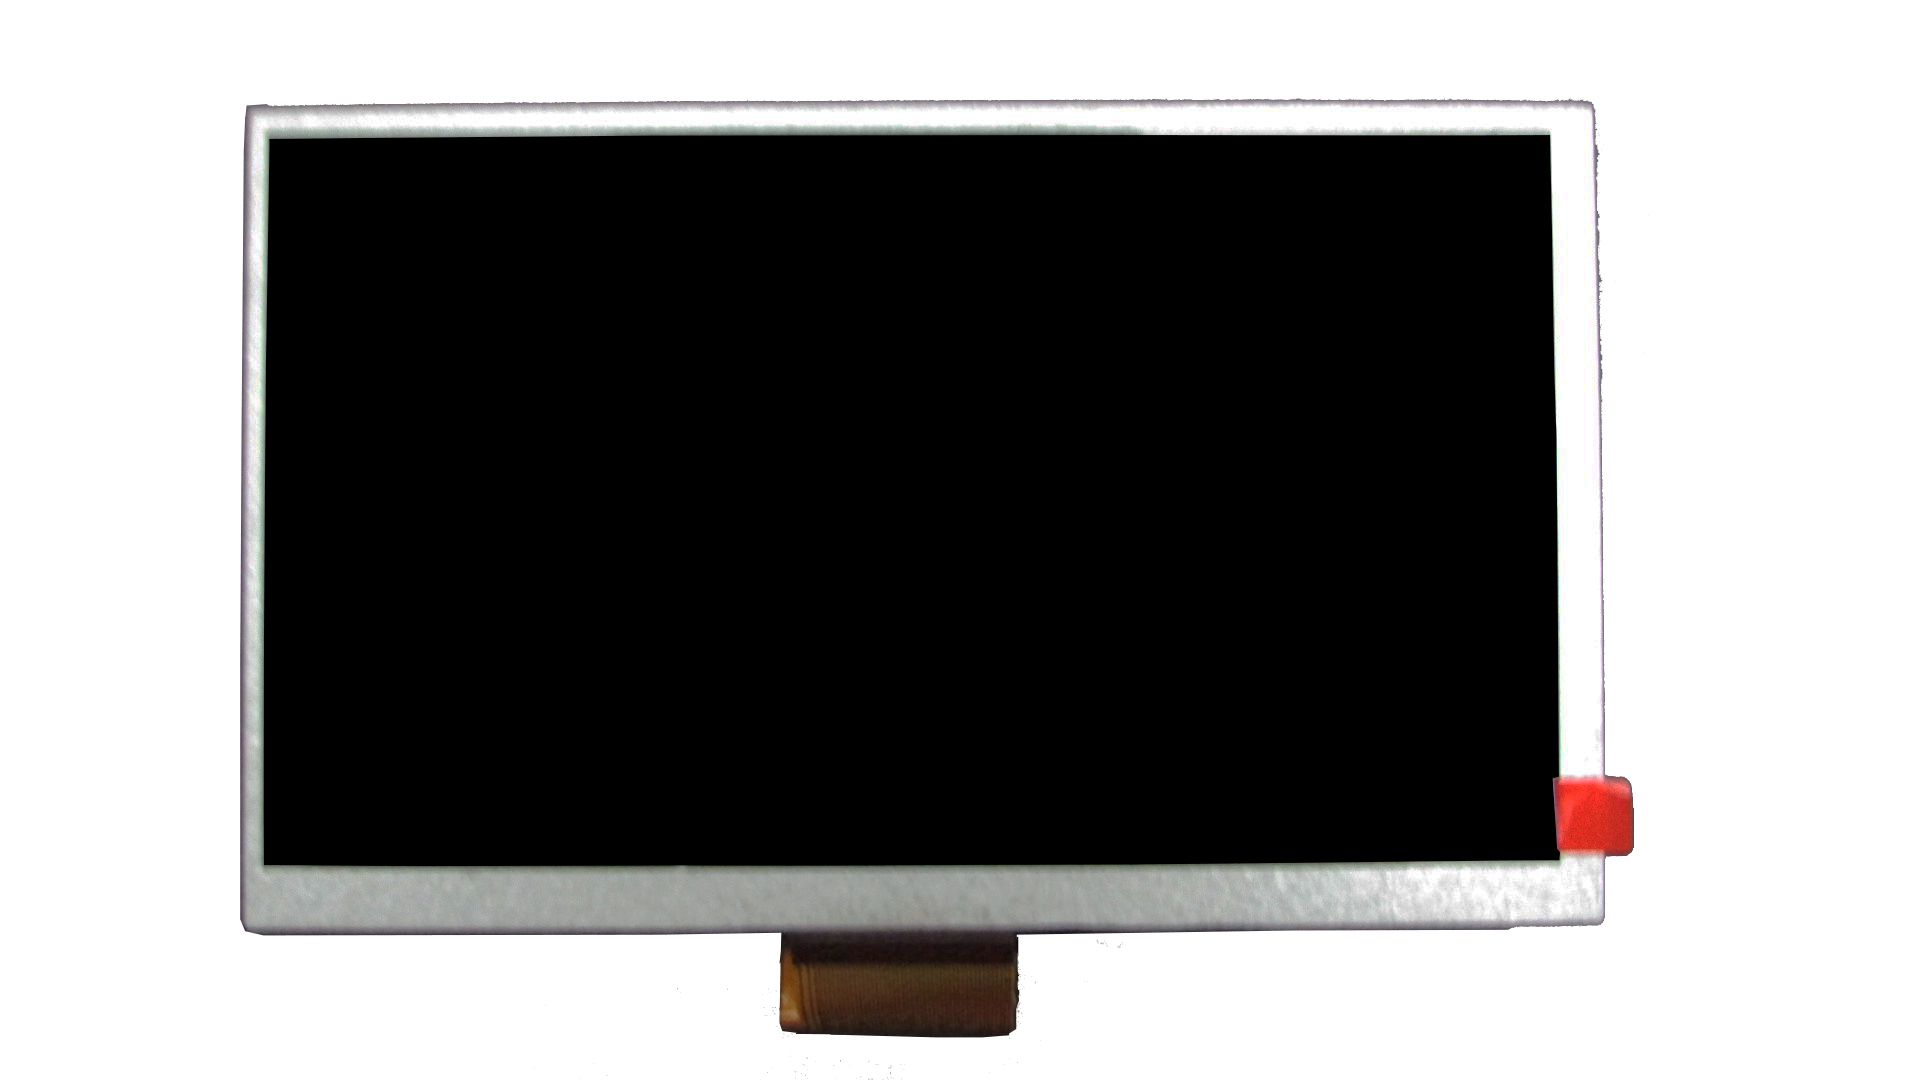 Tela Display Tablet Netbook Bak BK-729 Lcd 7